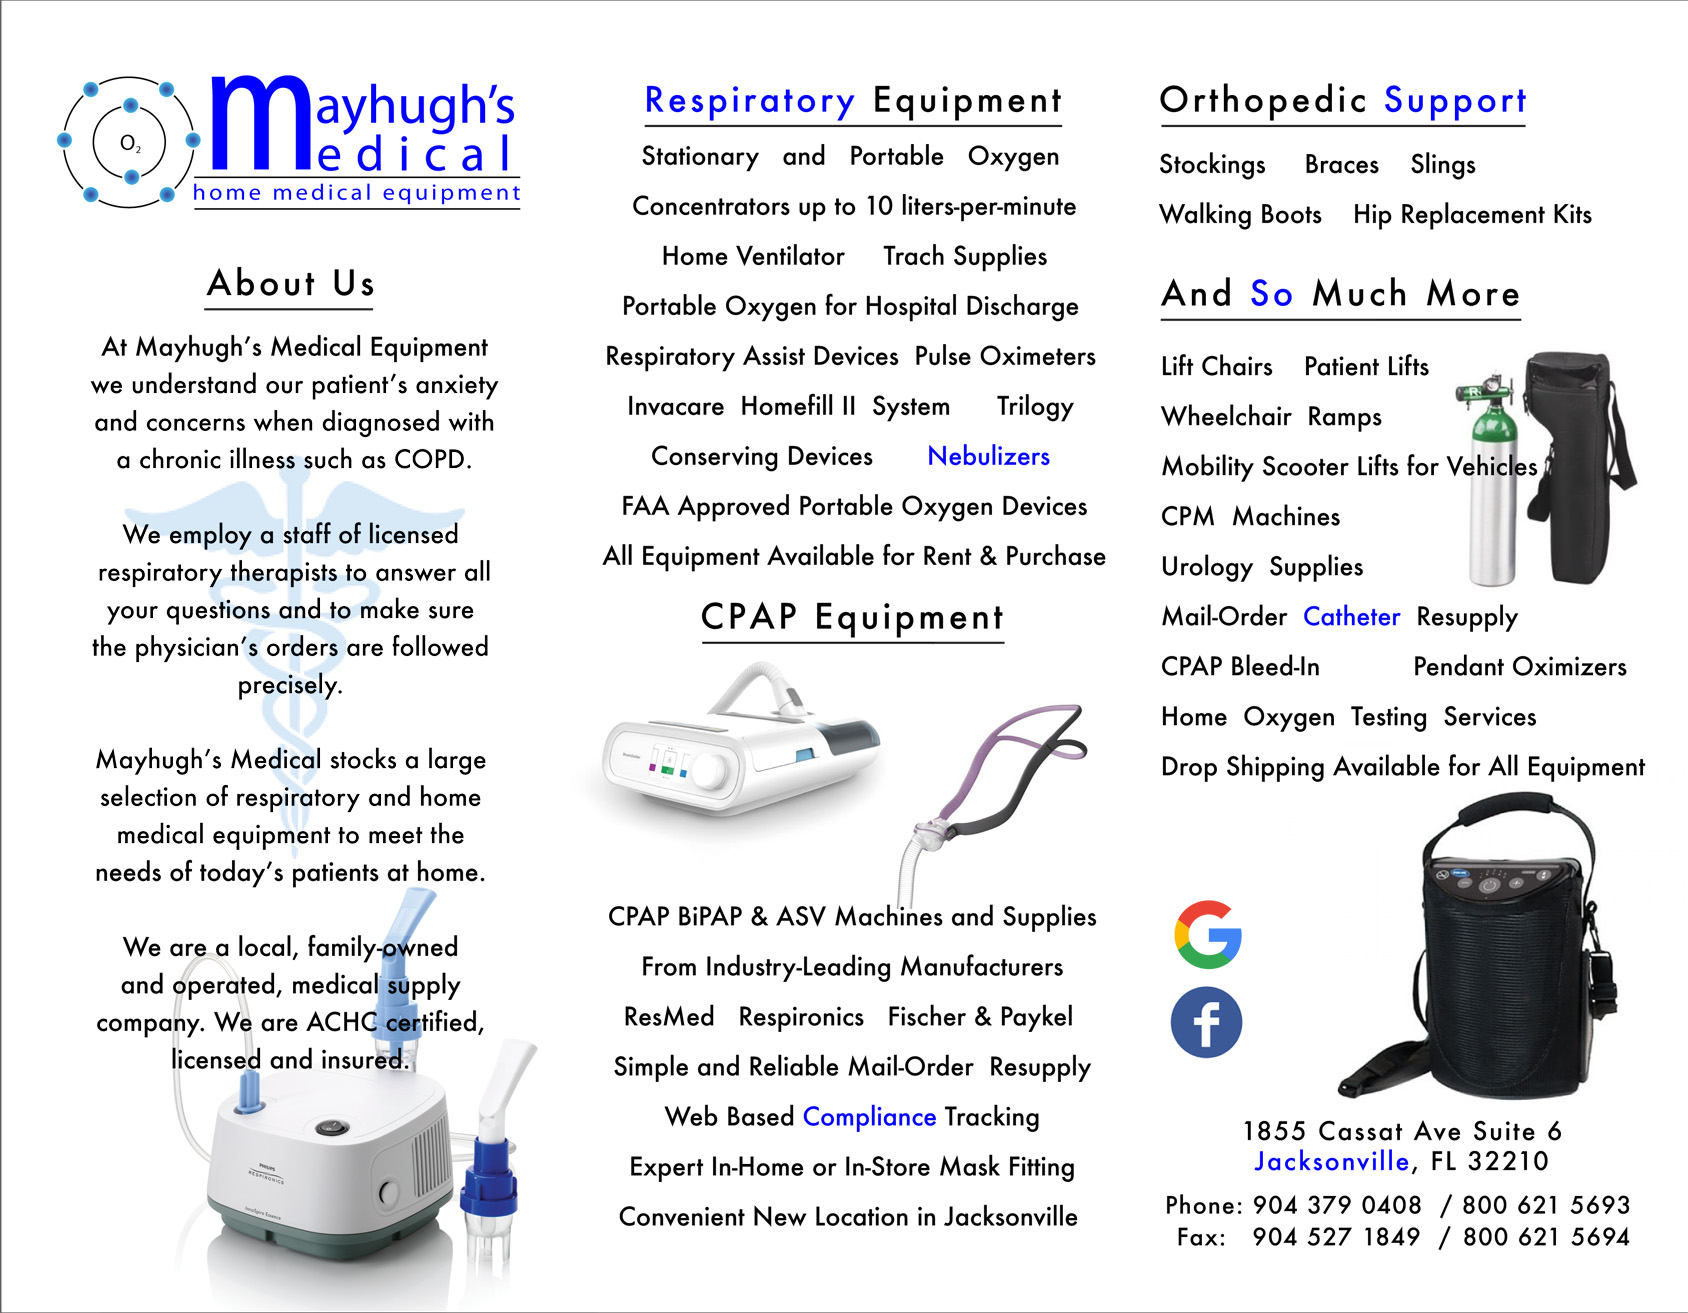 Mayhugh's Medical Equipment – Ryan Fletcher Design